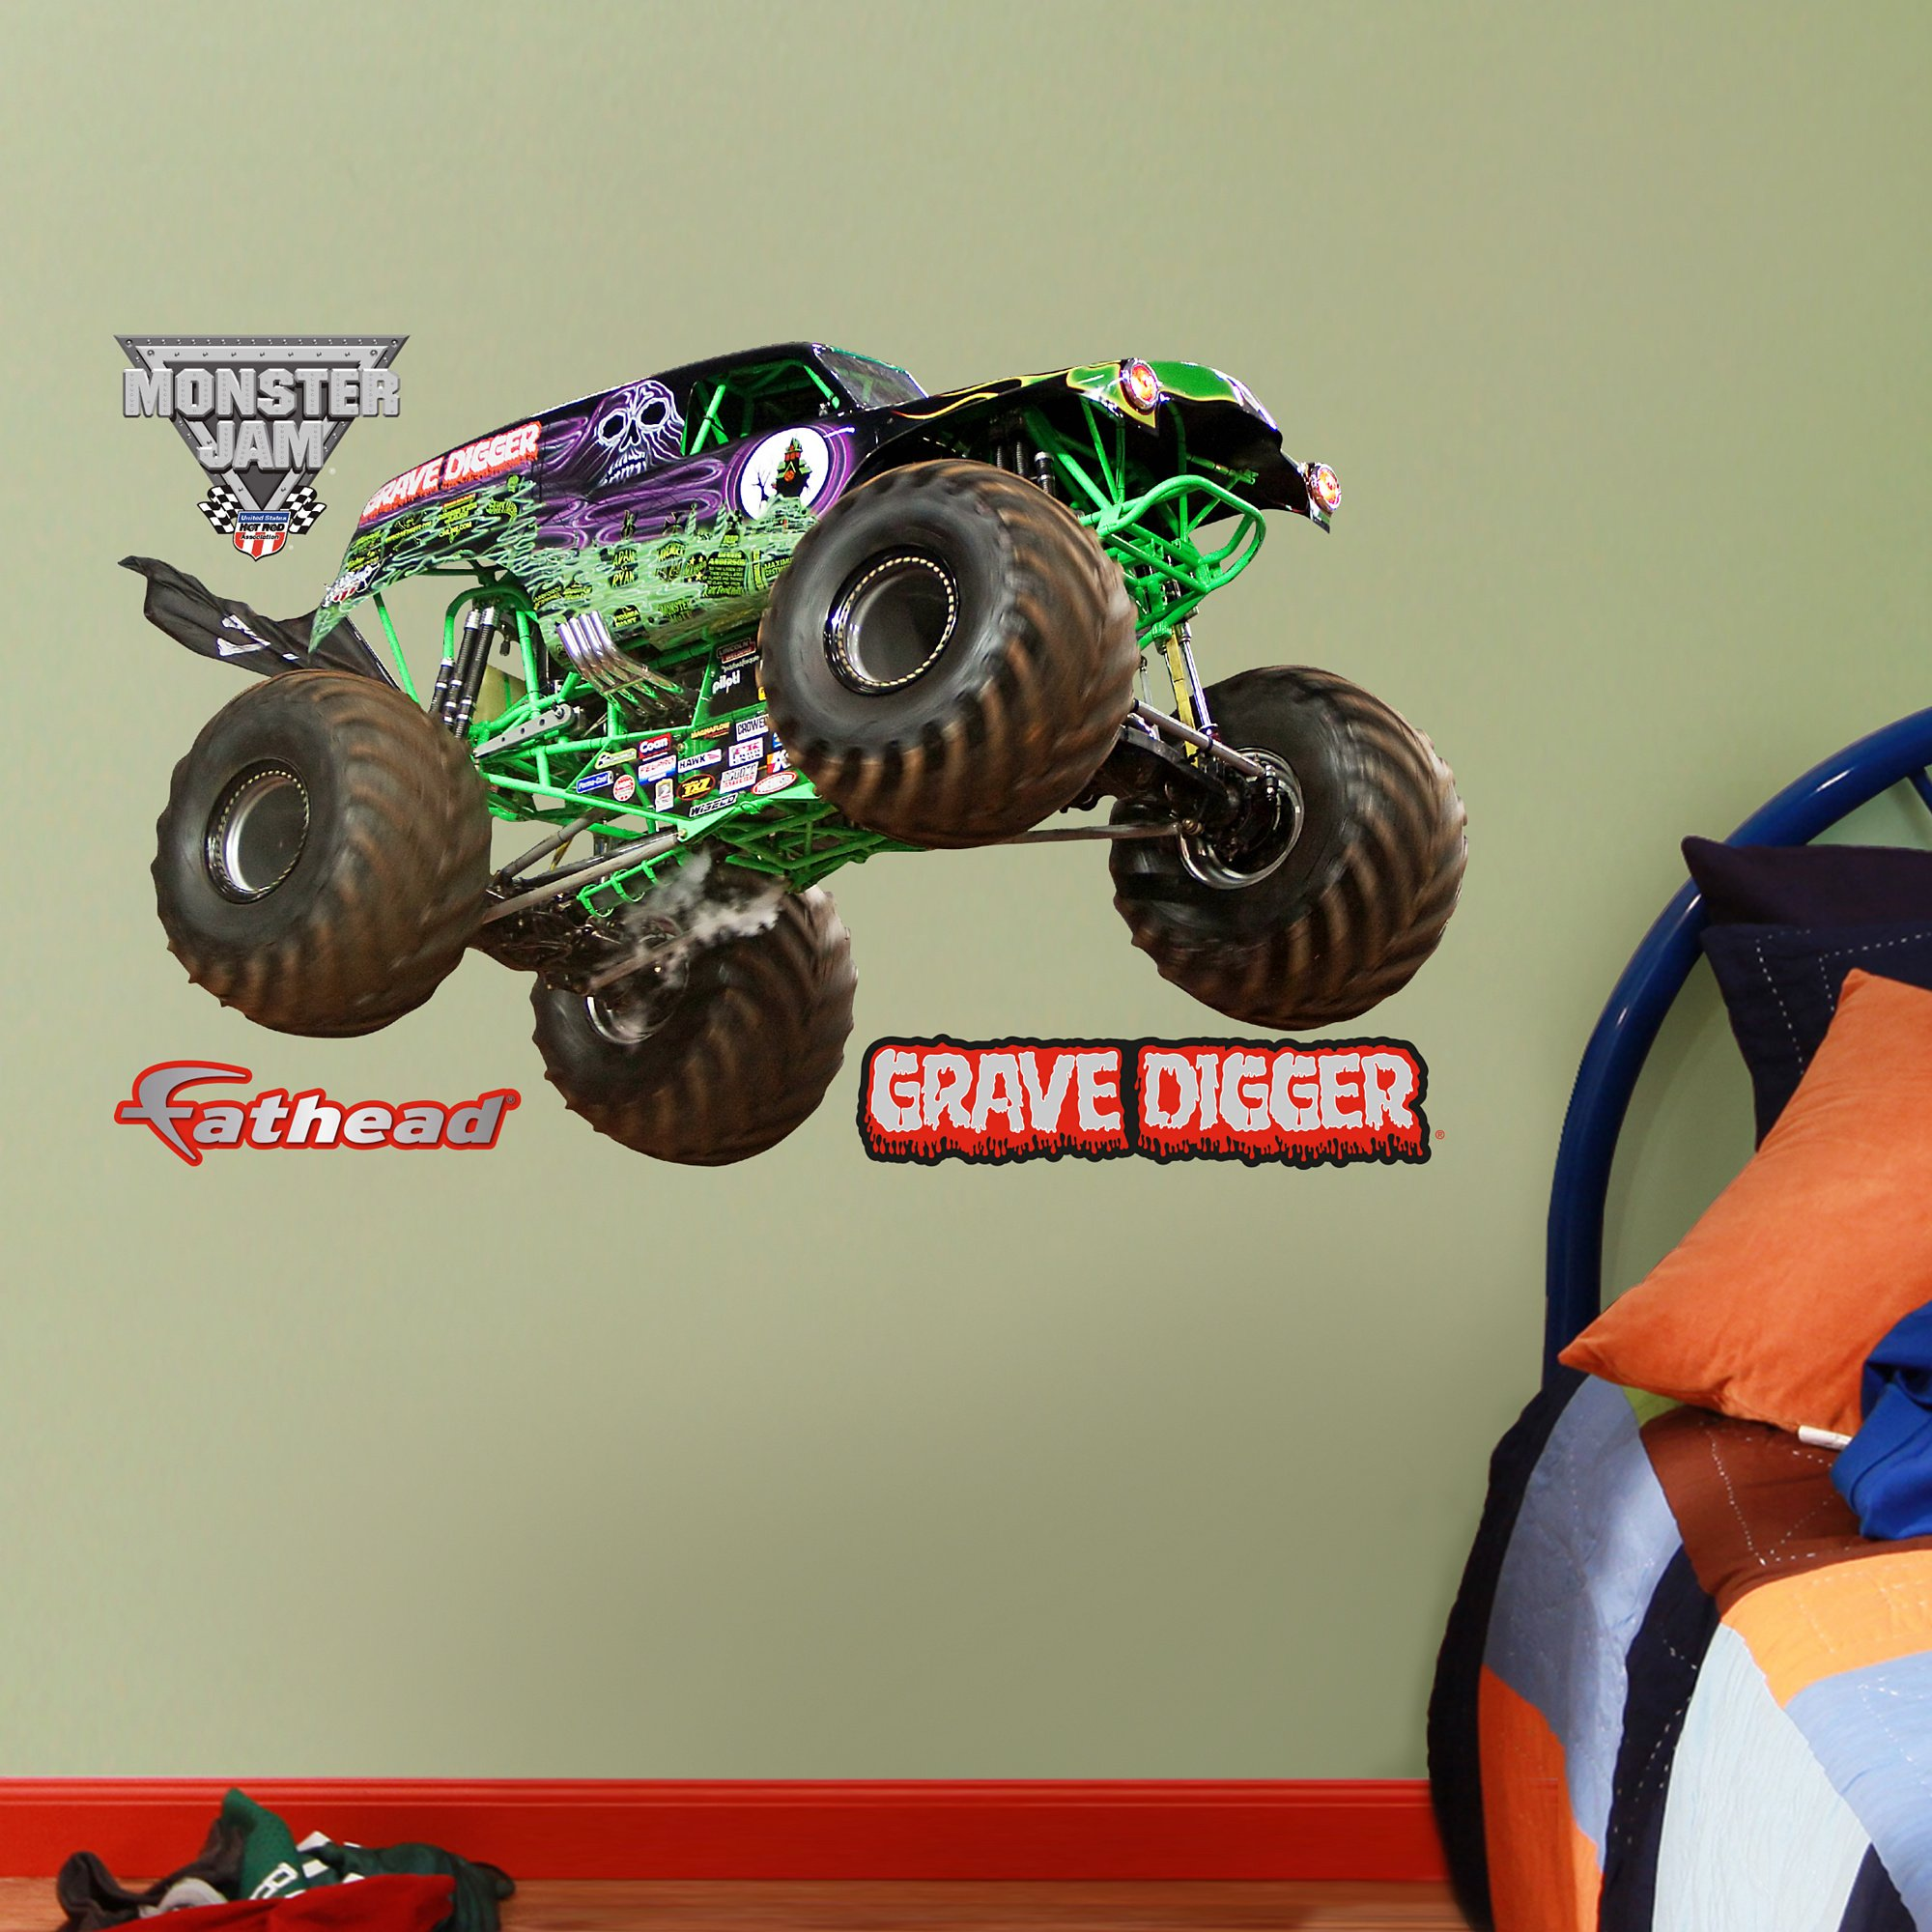 FATHEAD Grave Digger-X-Large Officially Licensed Monster Jam Removable Wall Decal by FATHEAD